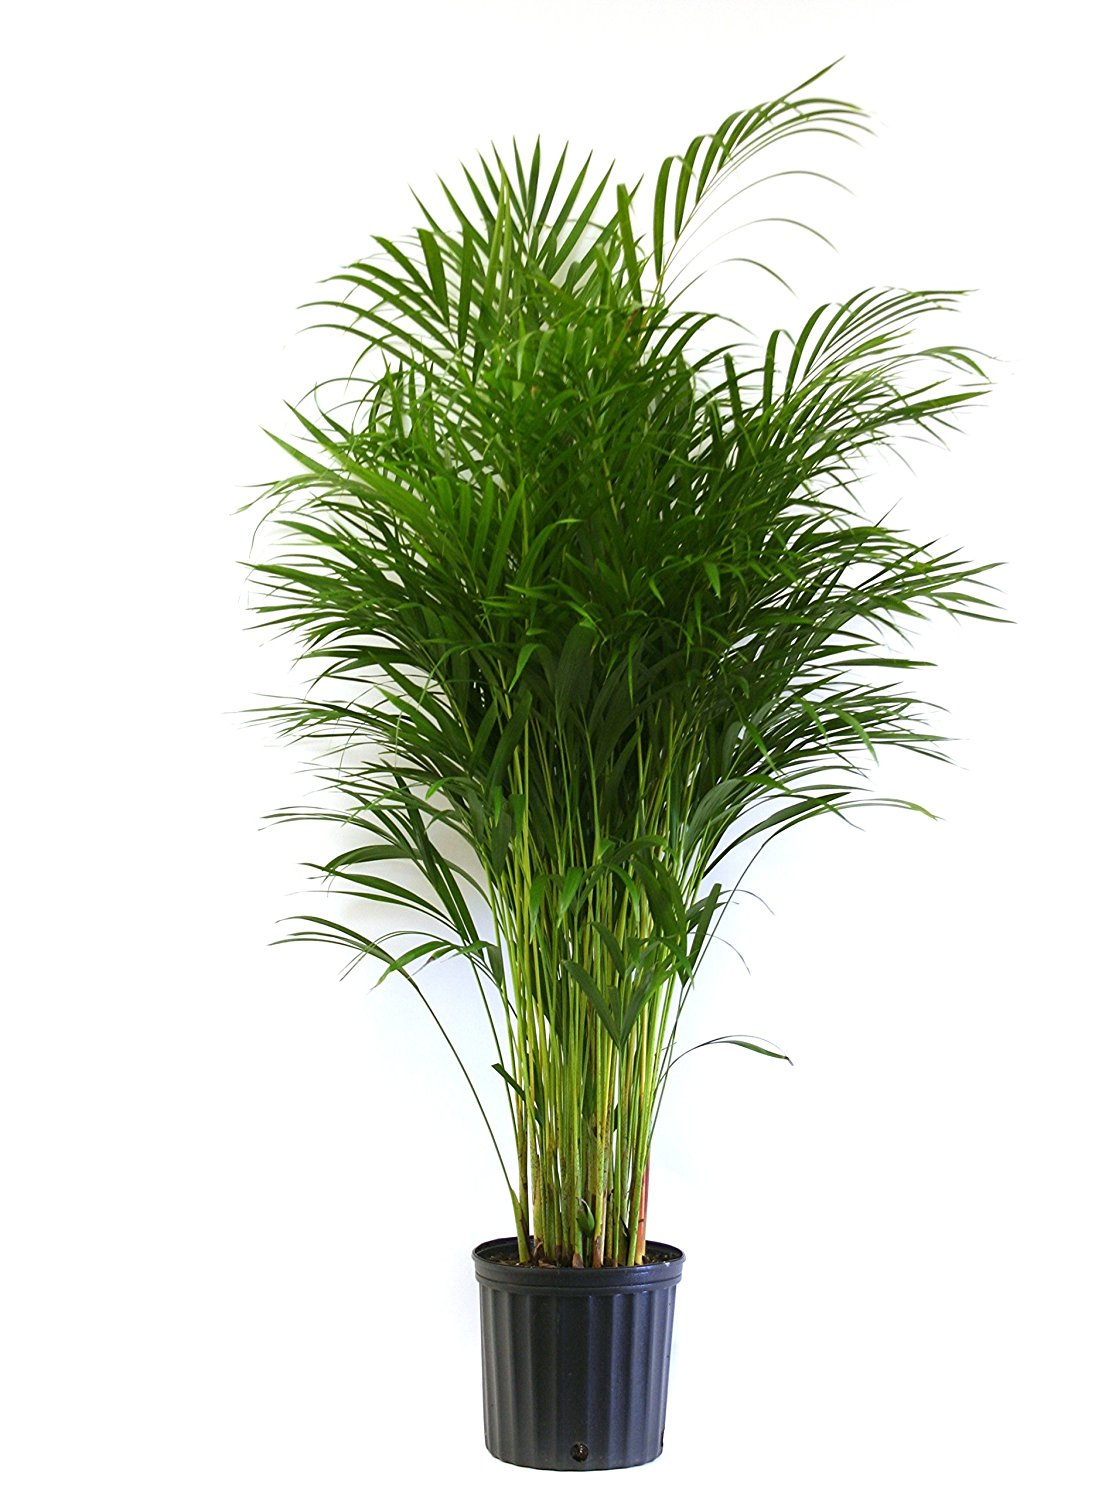 Delray Plants Butterfly Palm (Areca) in Pot